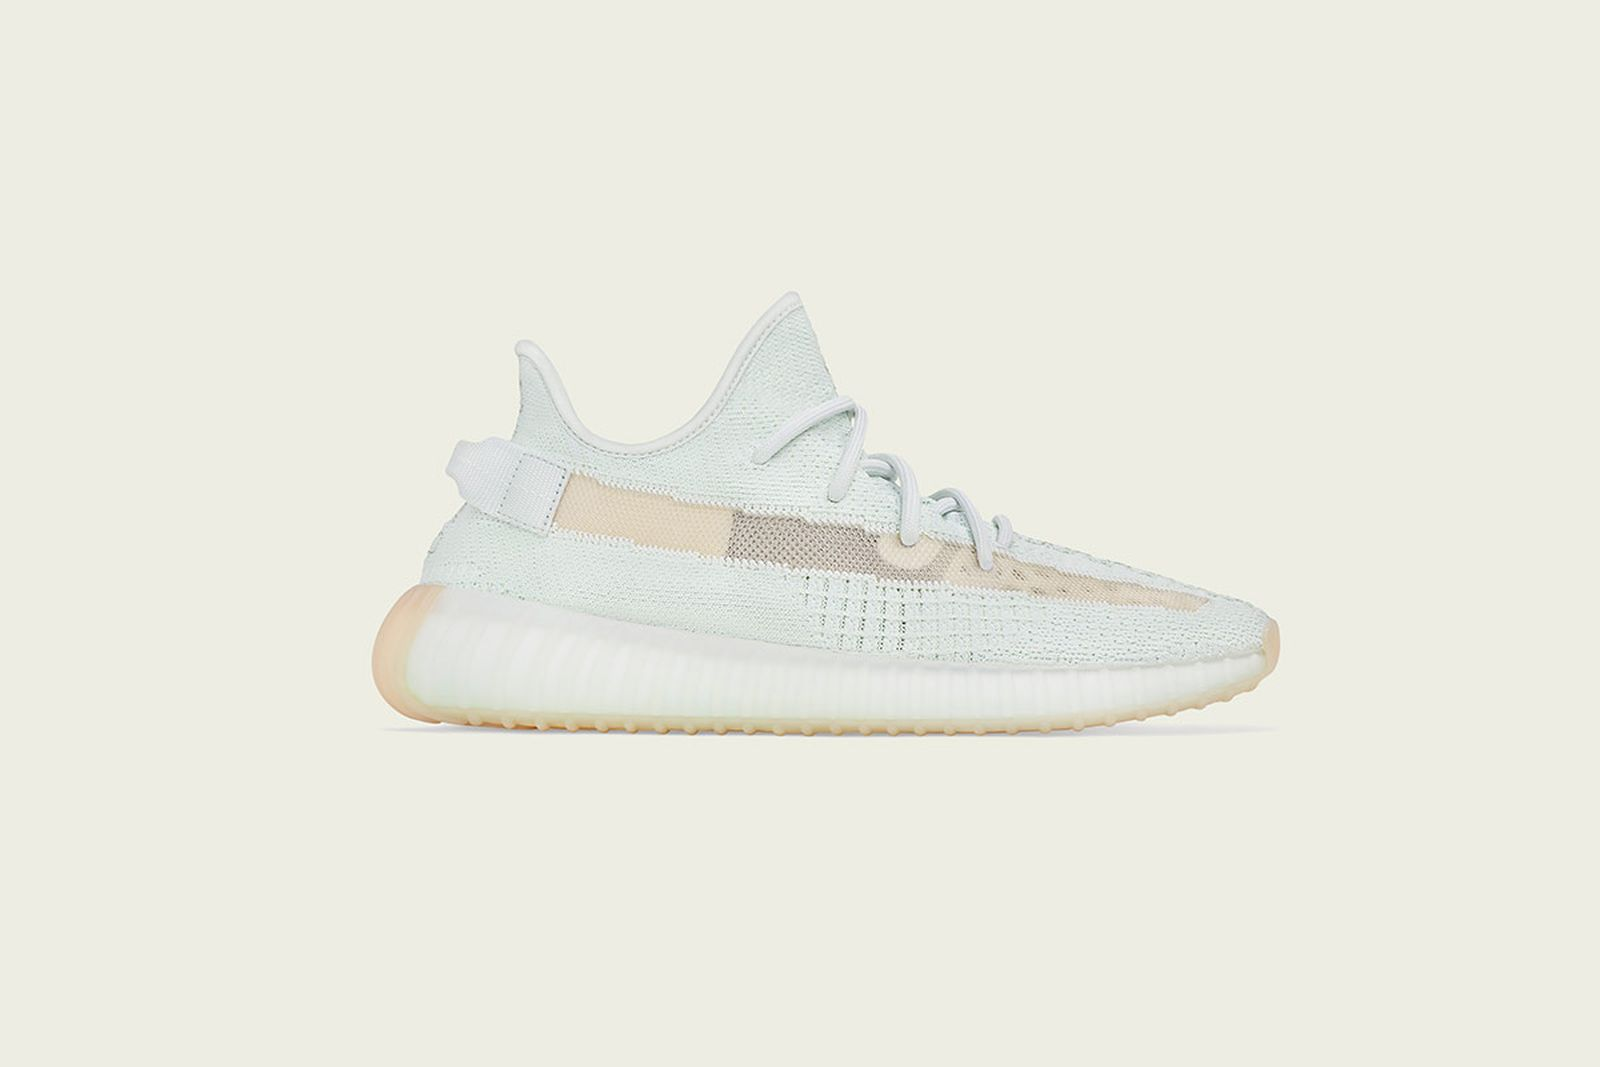 adidas yeezy boost 350 v2 hyperspace release date price kanye west